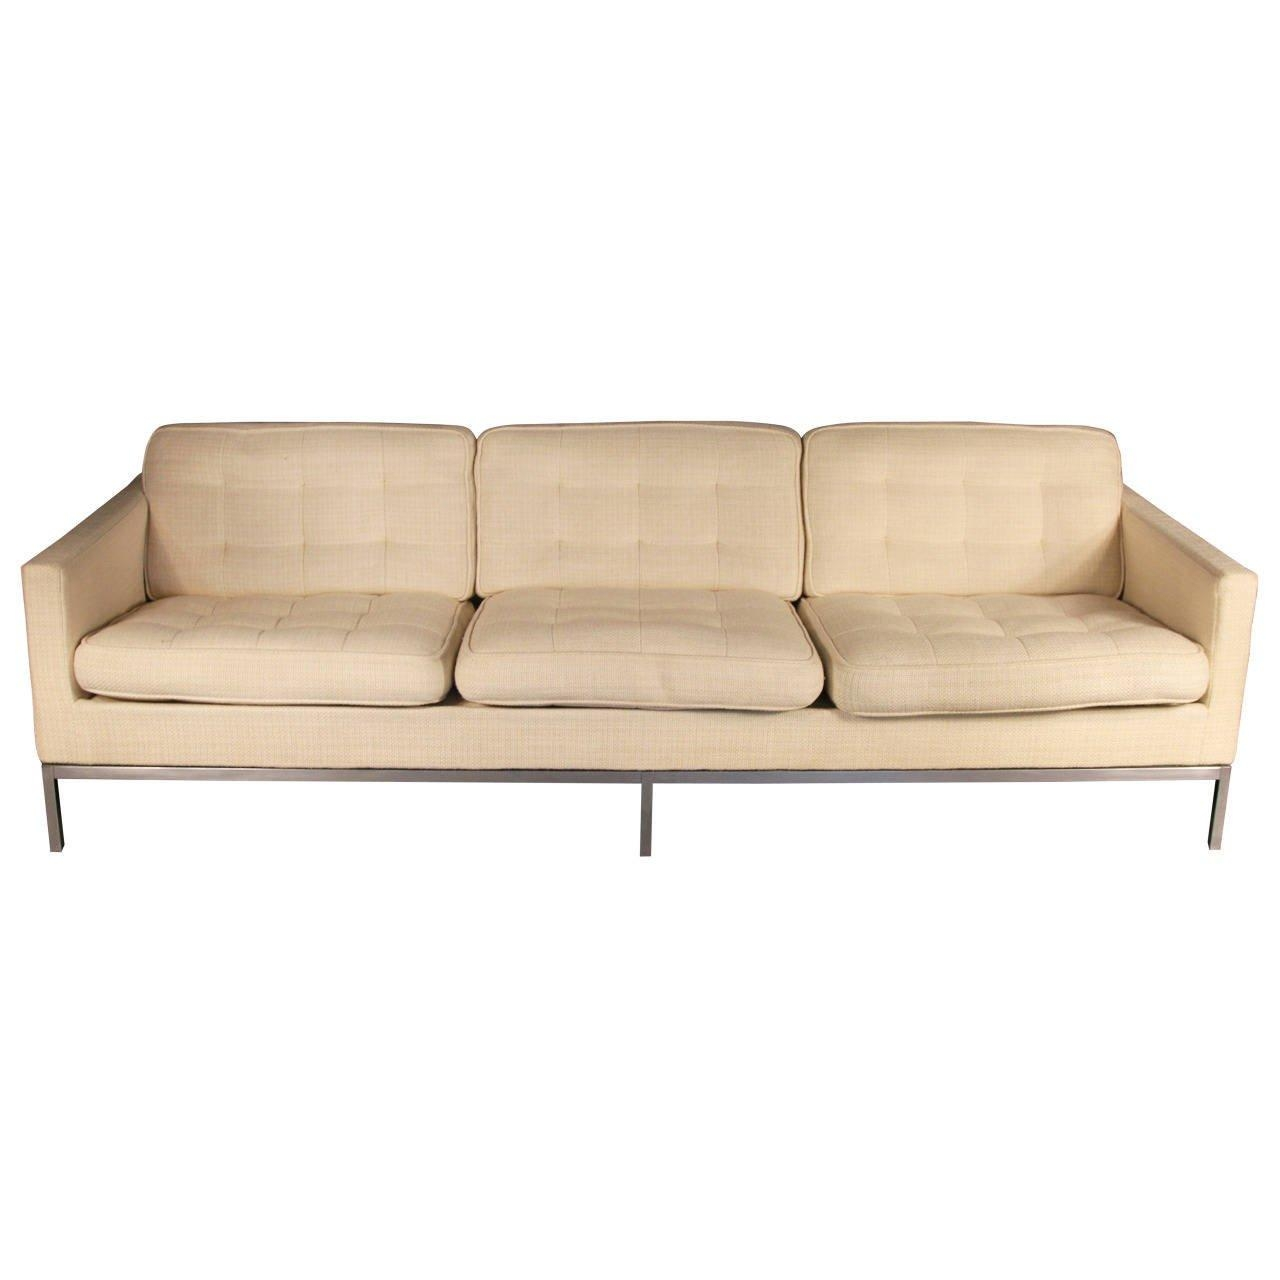 Florence Knoll Sofas – 54 For Sale At 1Stdibs Regarding Florence Knoll 3 Seater Sofas (View 16 of 20)